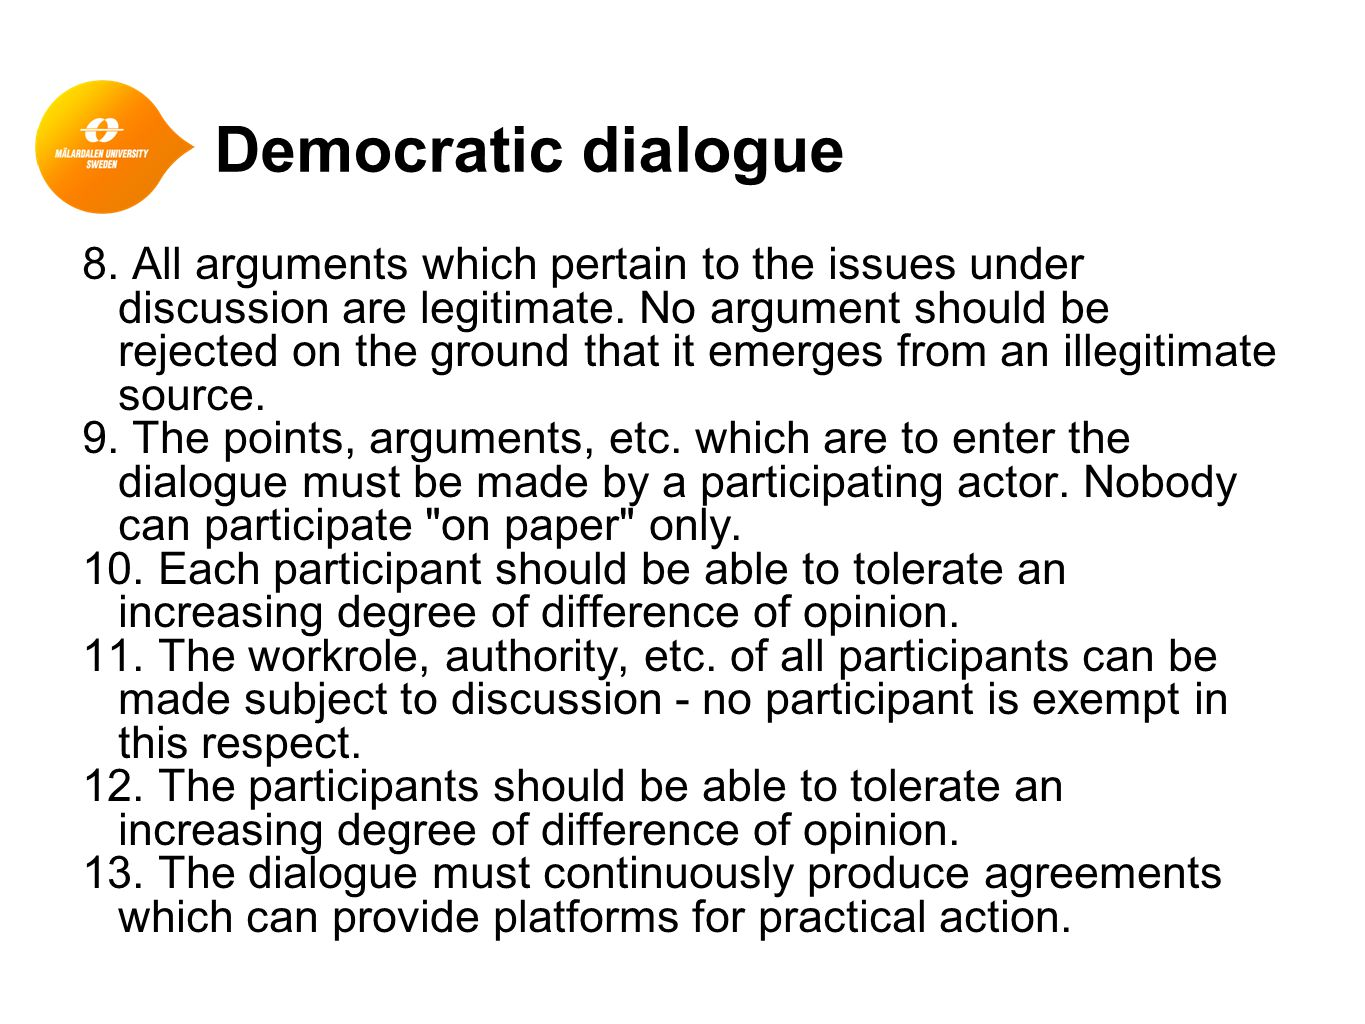 Democratic dialogue 8. All arguments which pertain to the issues under discussion are legitimate. No argument should be rejected on the ground that it